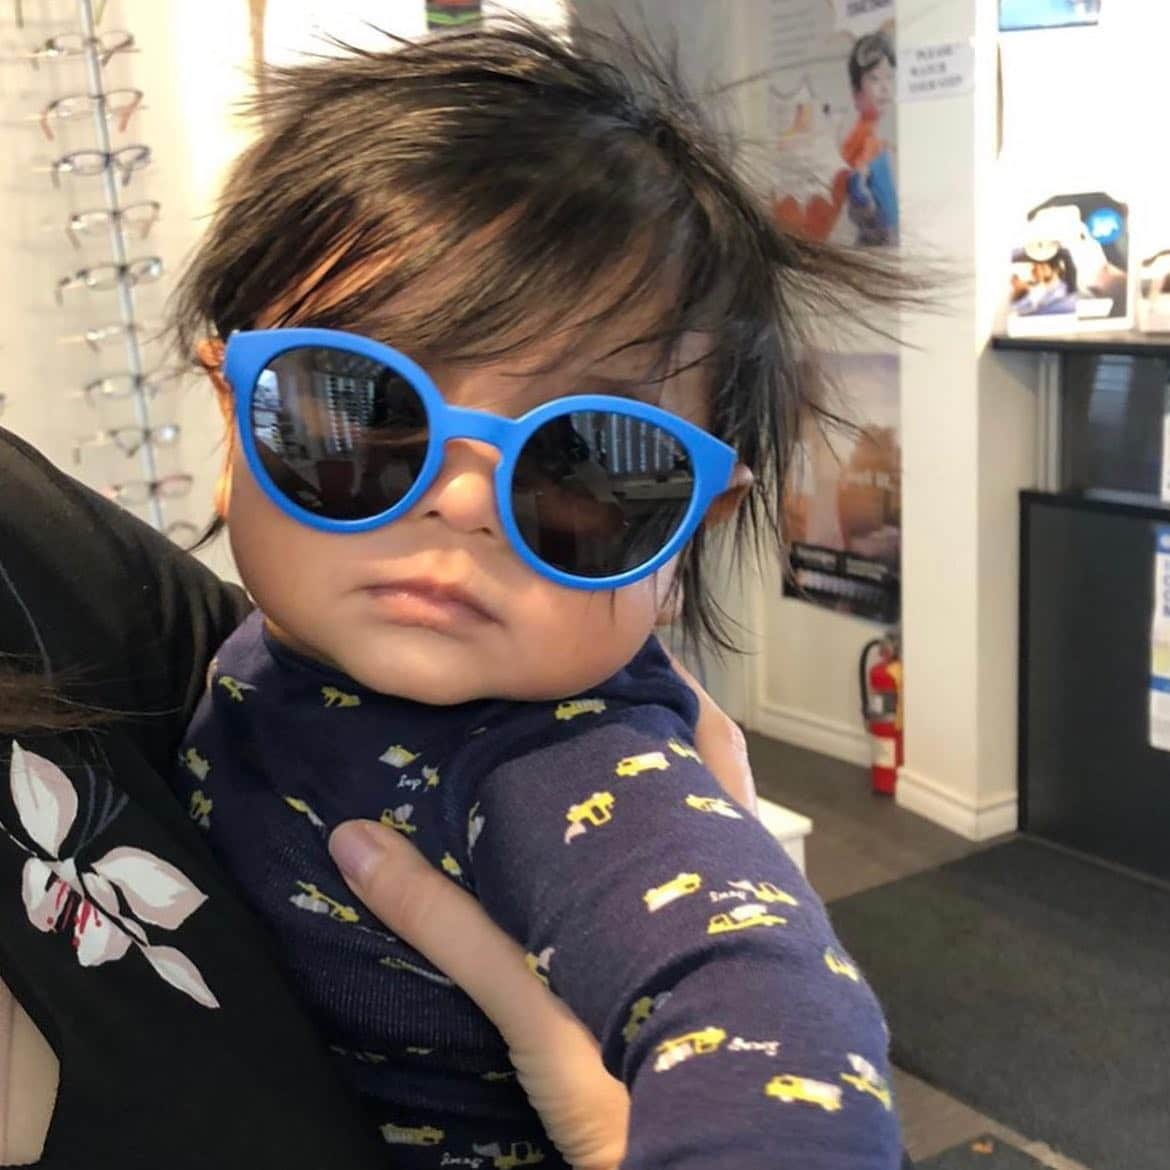 This is Kai, Dr. Vettivelu's son. He is rocking sunglasses at just 4 months of age. You are never too young to protect your eyes from harmful UV light. He made our day when he came to the office to visit us ?#sunglasses #babykai #optometry